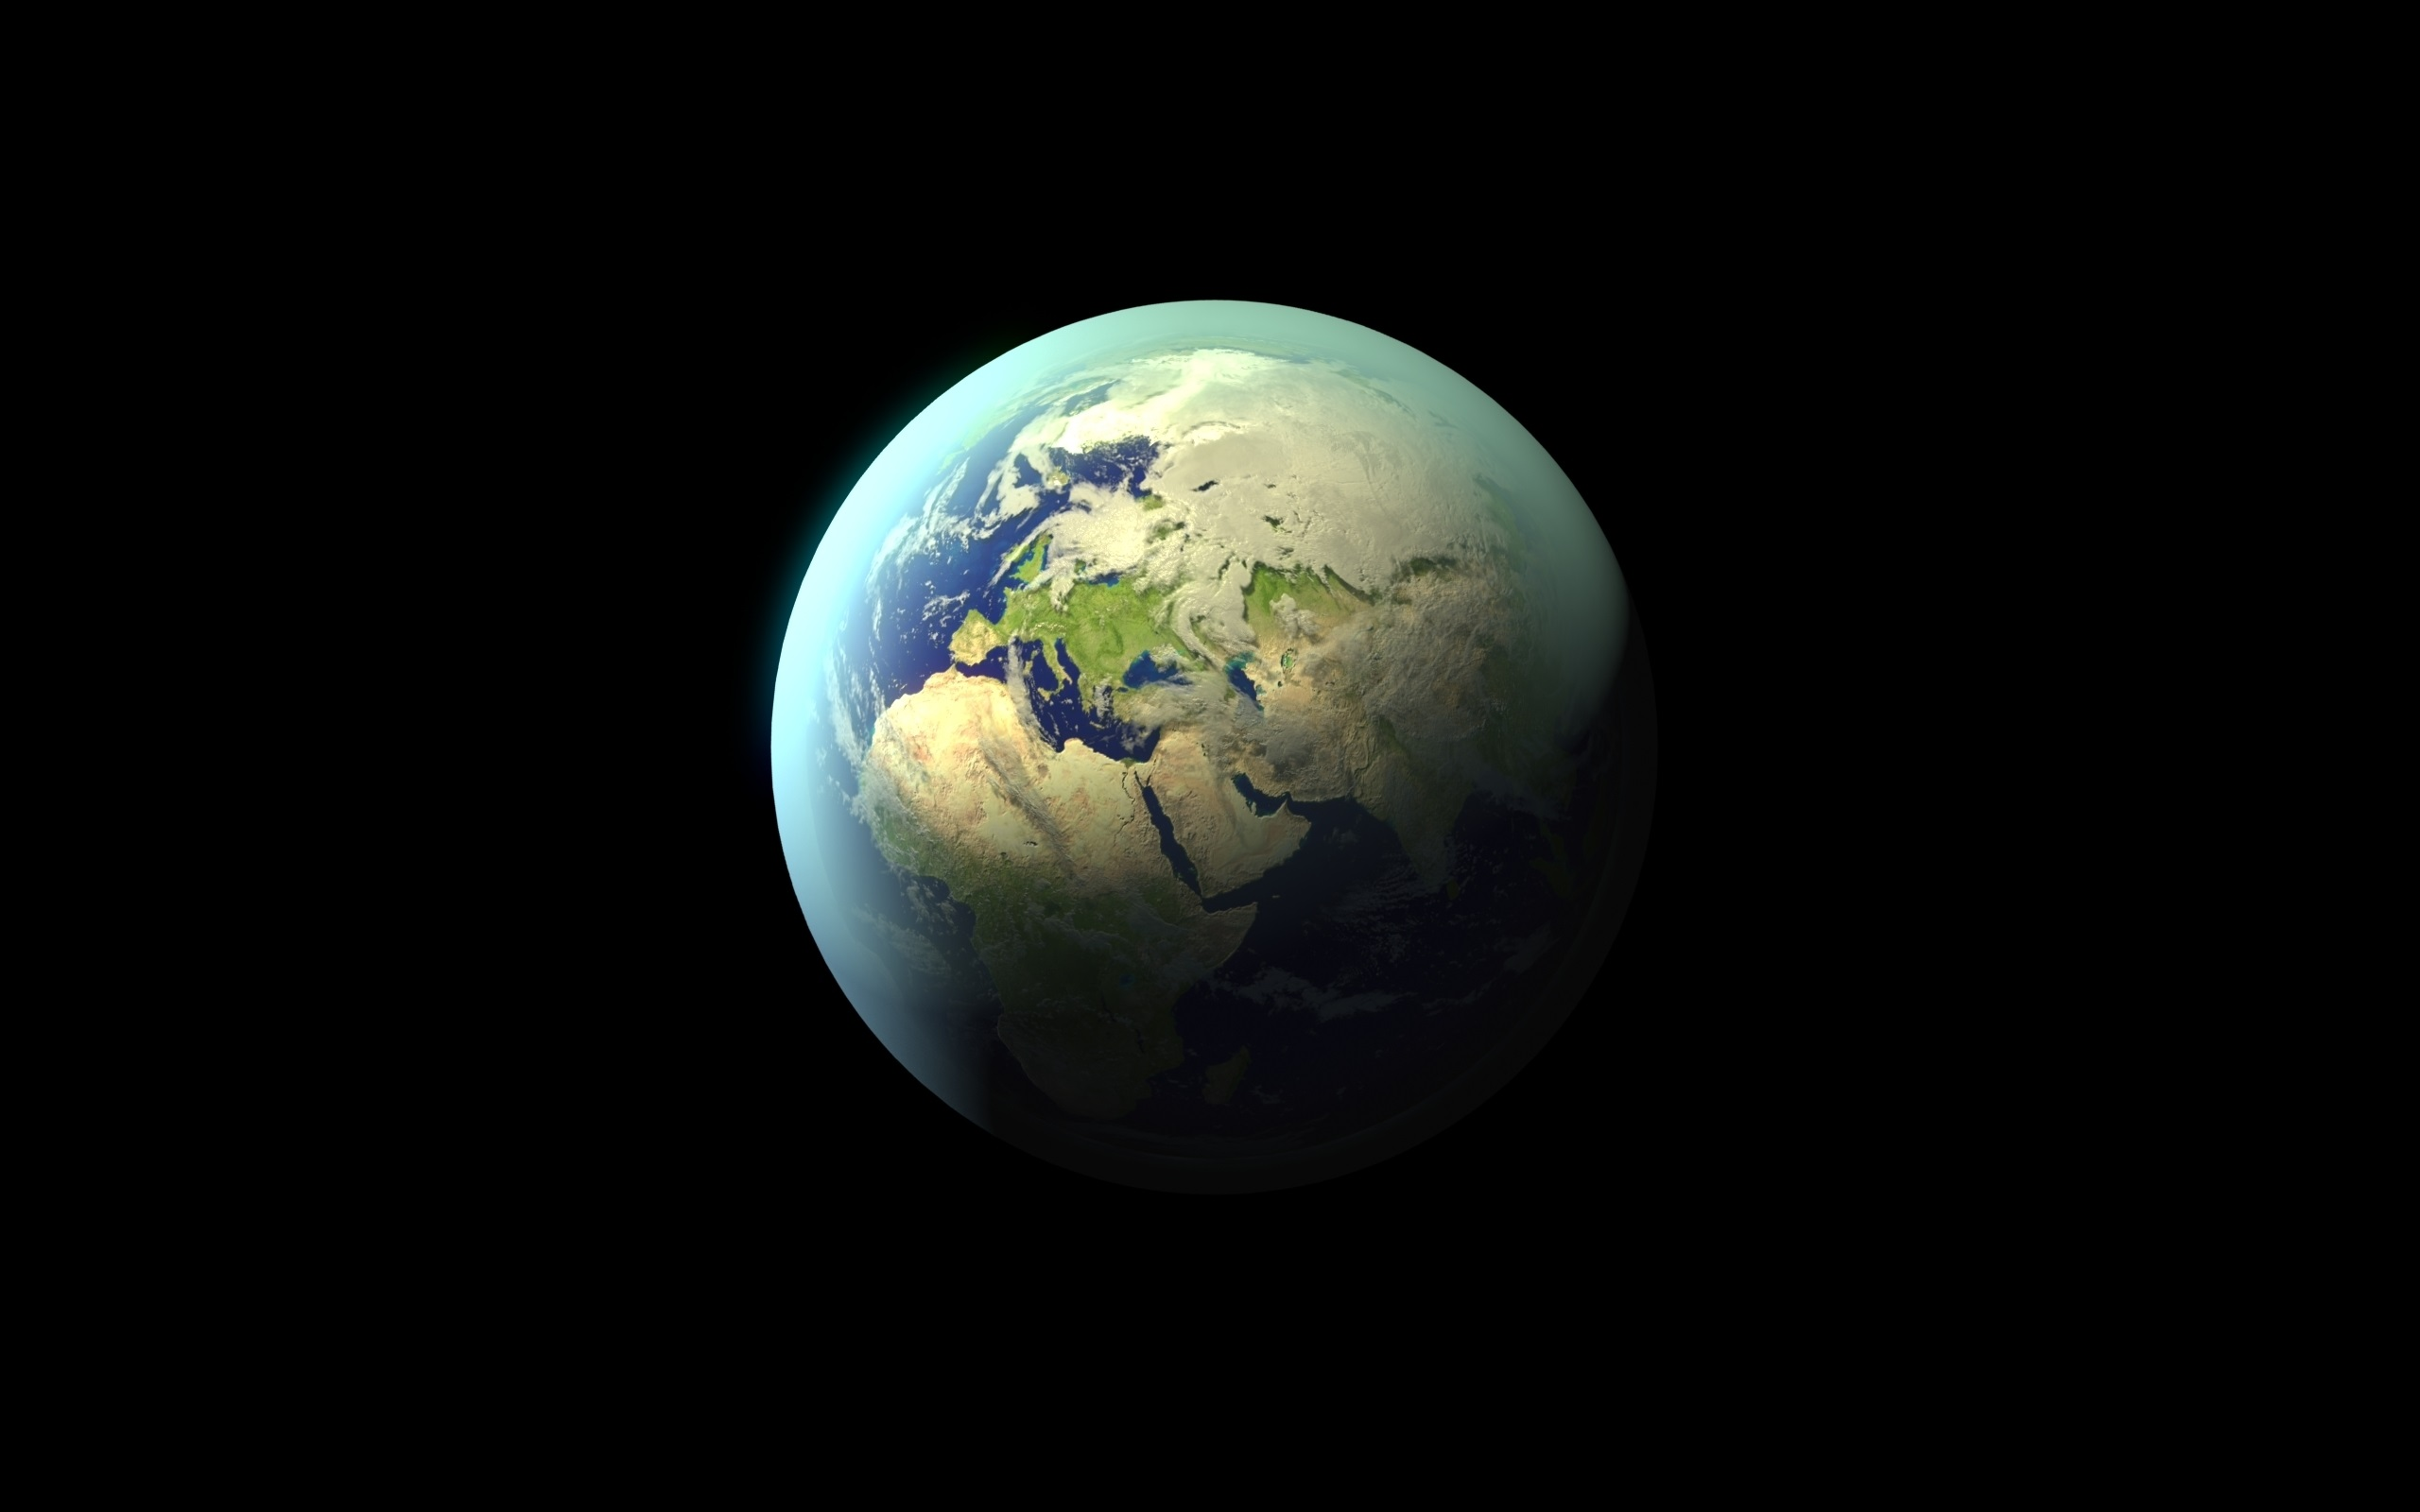 Wallpaper Earth Planet Black Background 2560x1600 Hd Picture Image